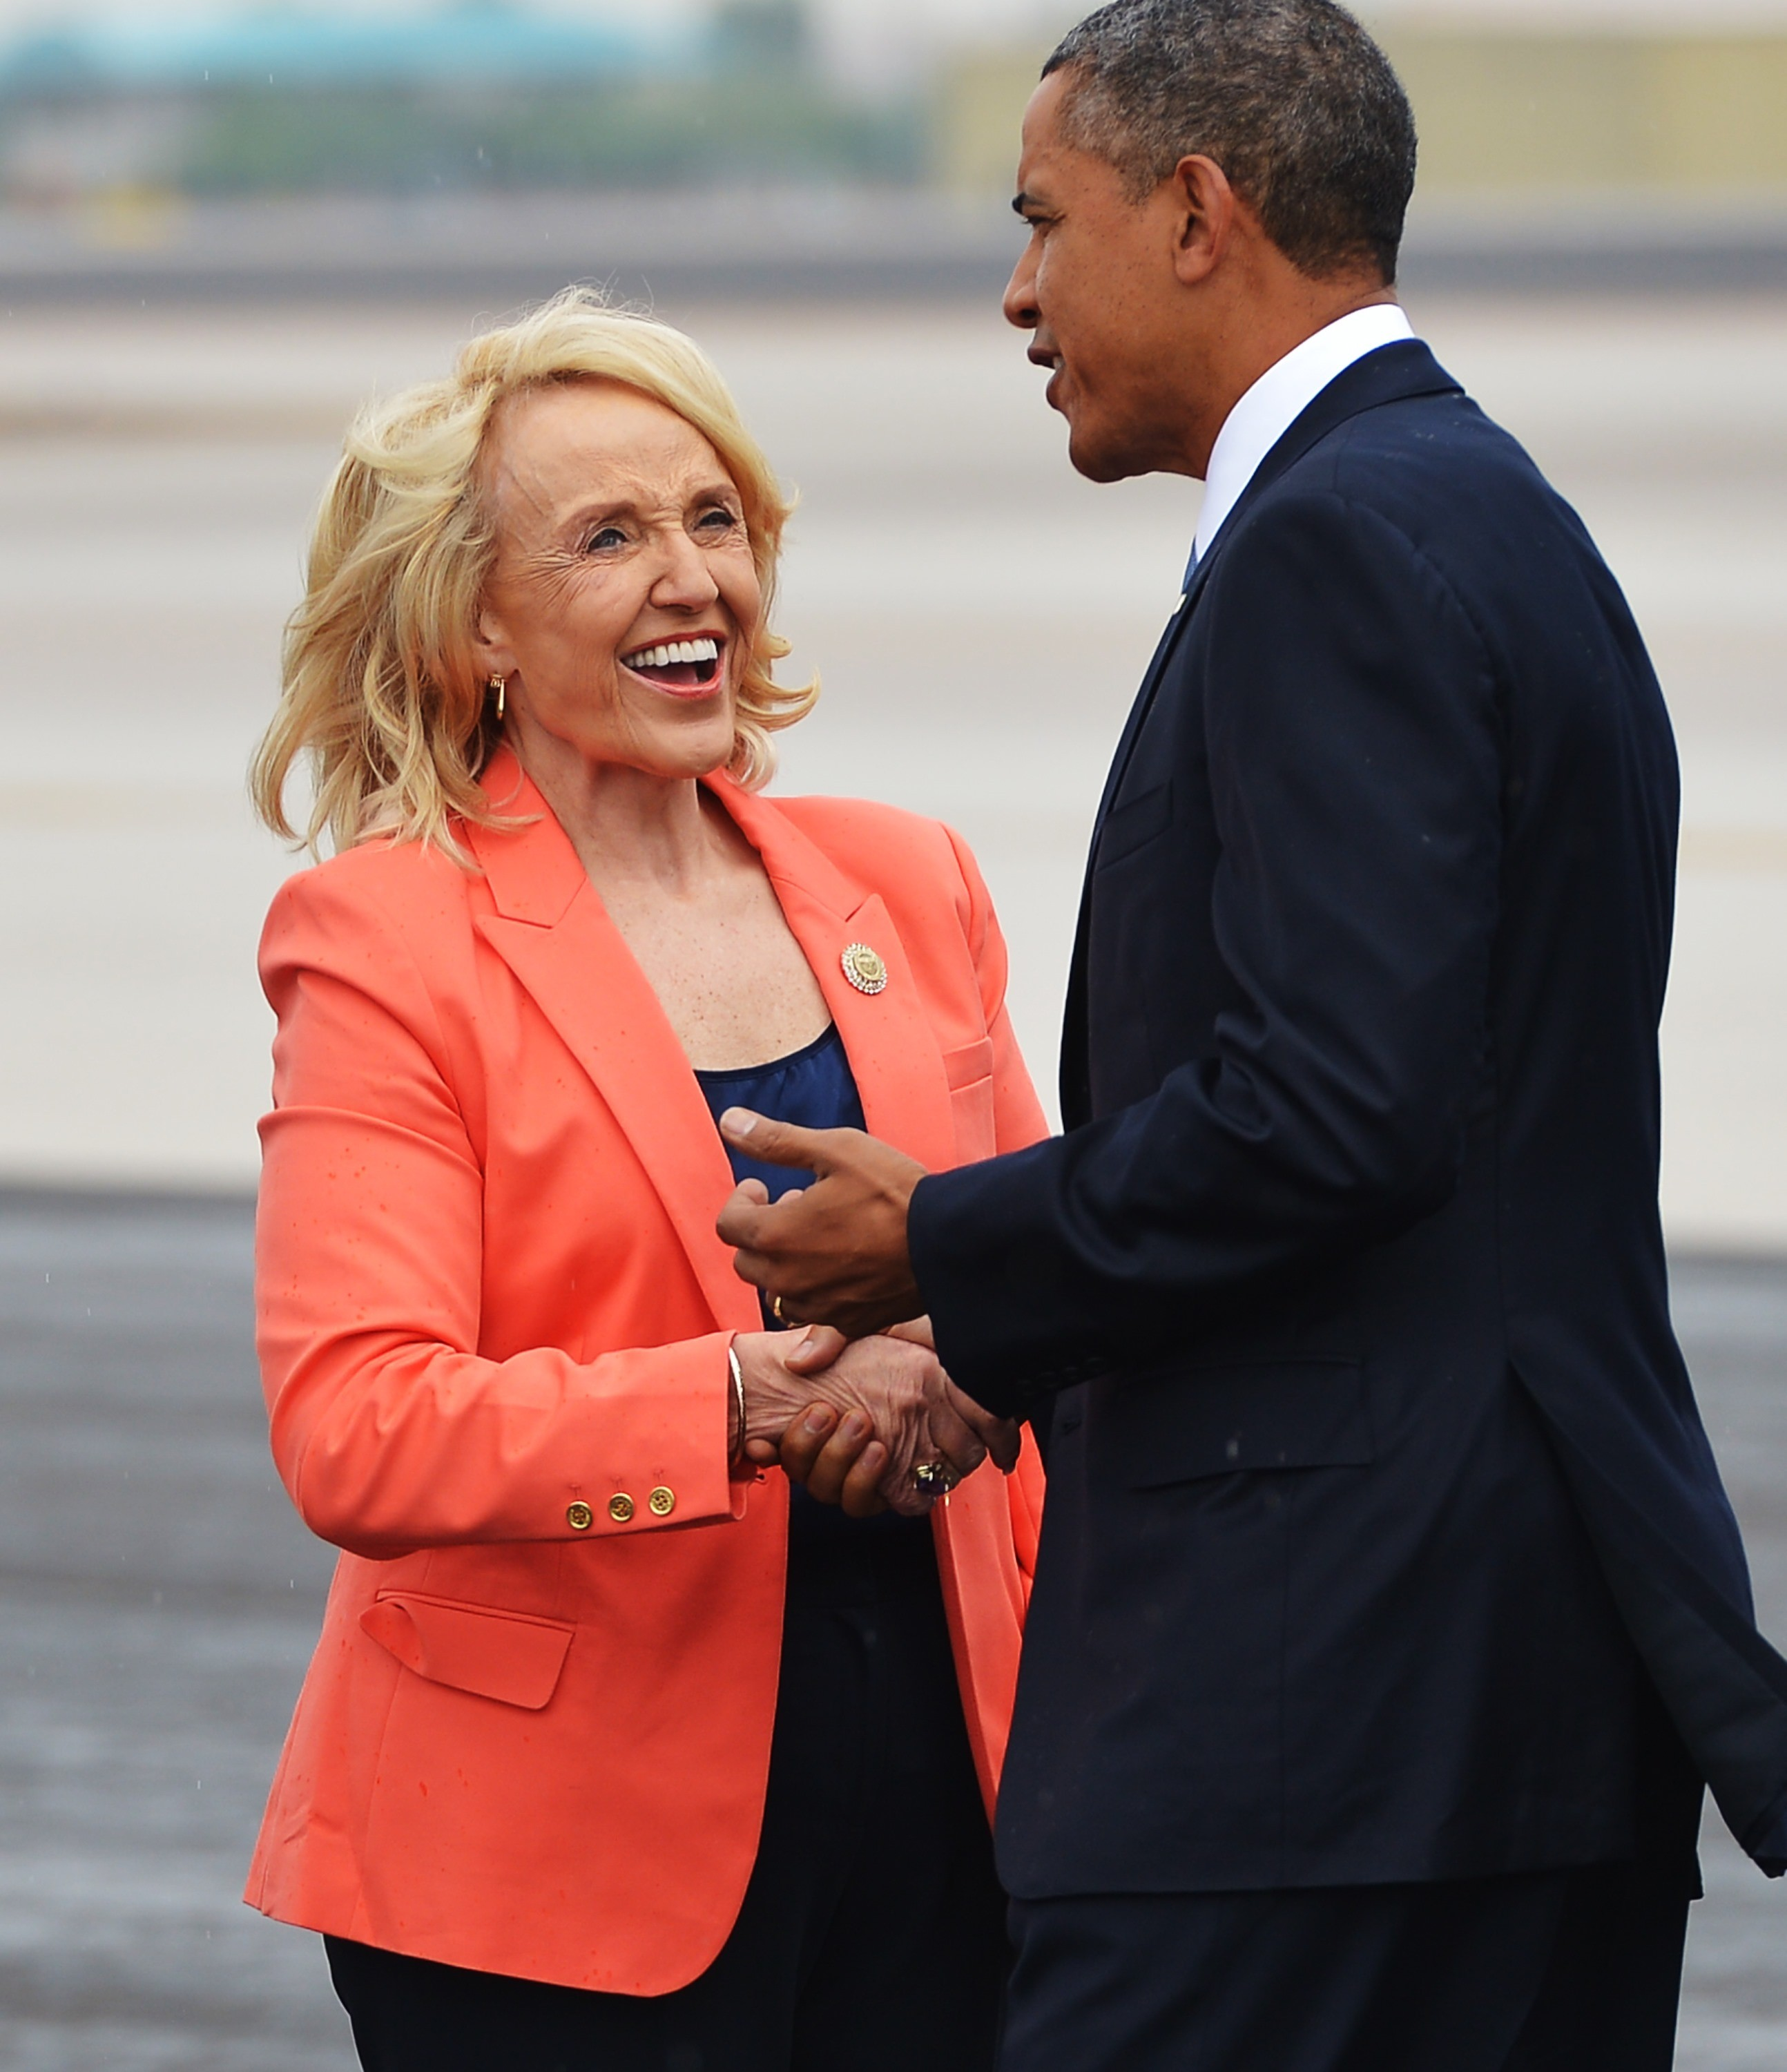 Episode 117 Watergate Unseating A President: Jan Brewer Pointing Finger In Obama's Face